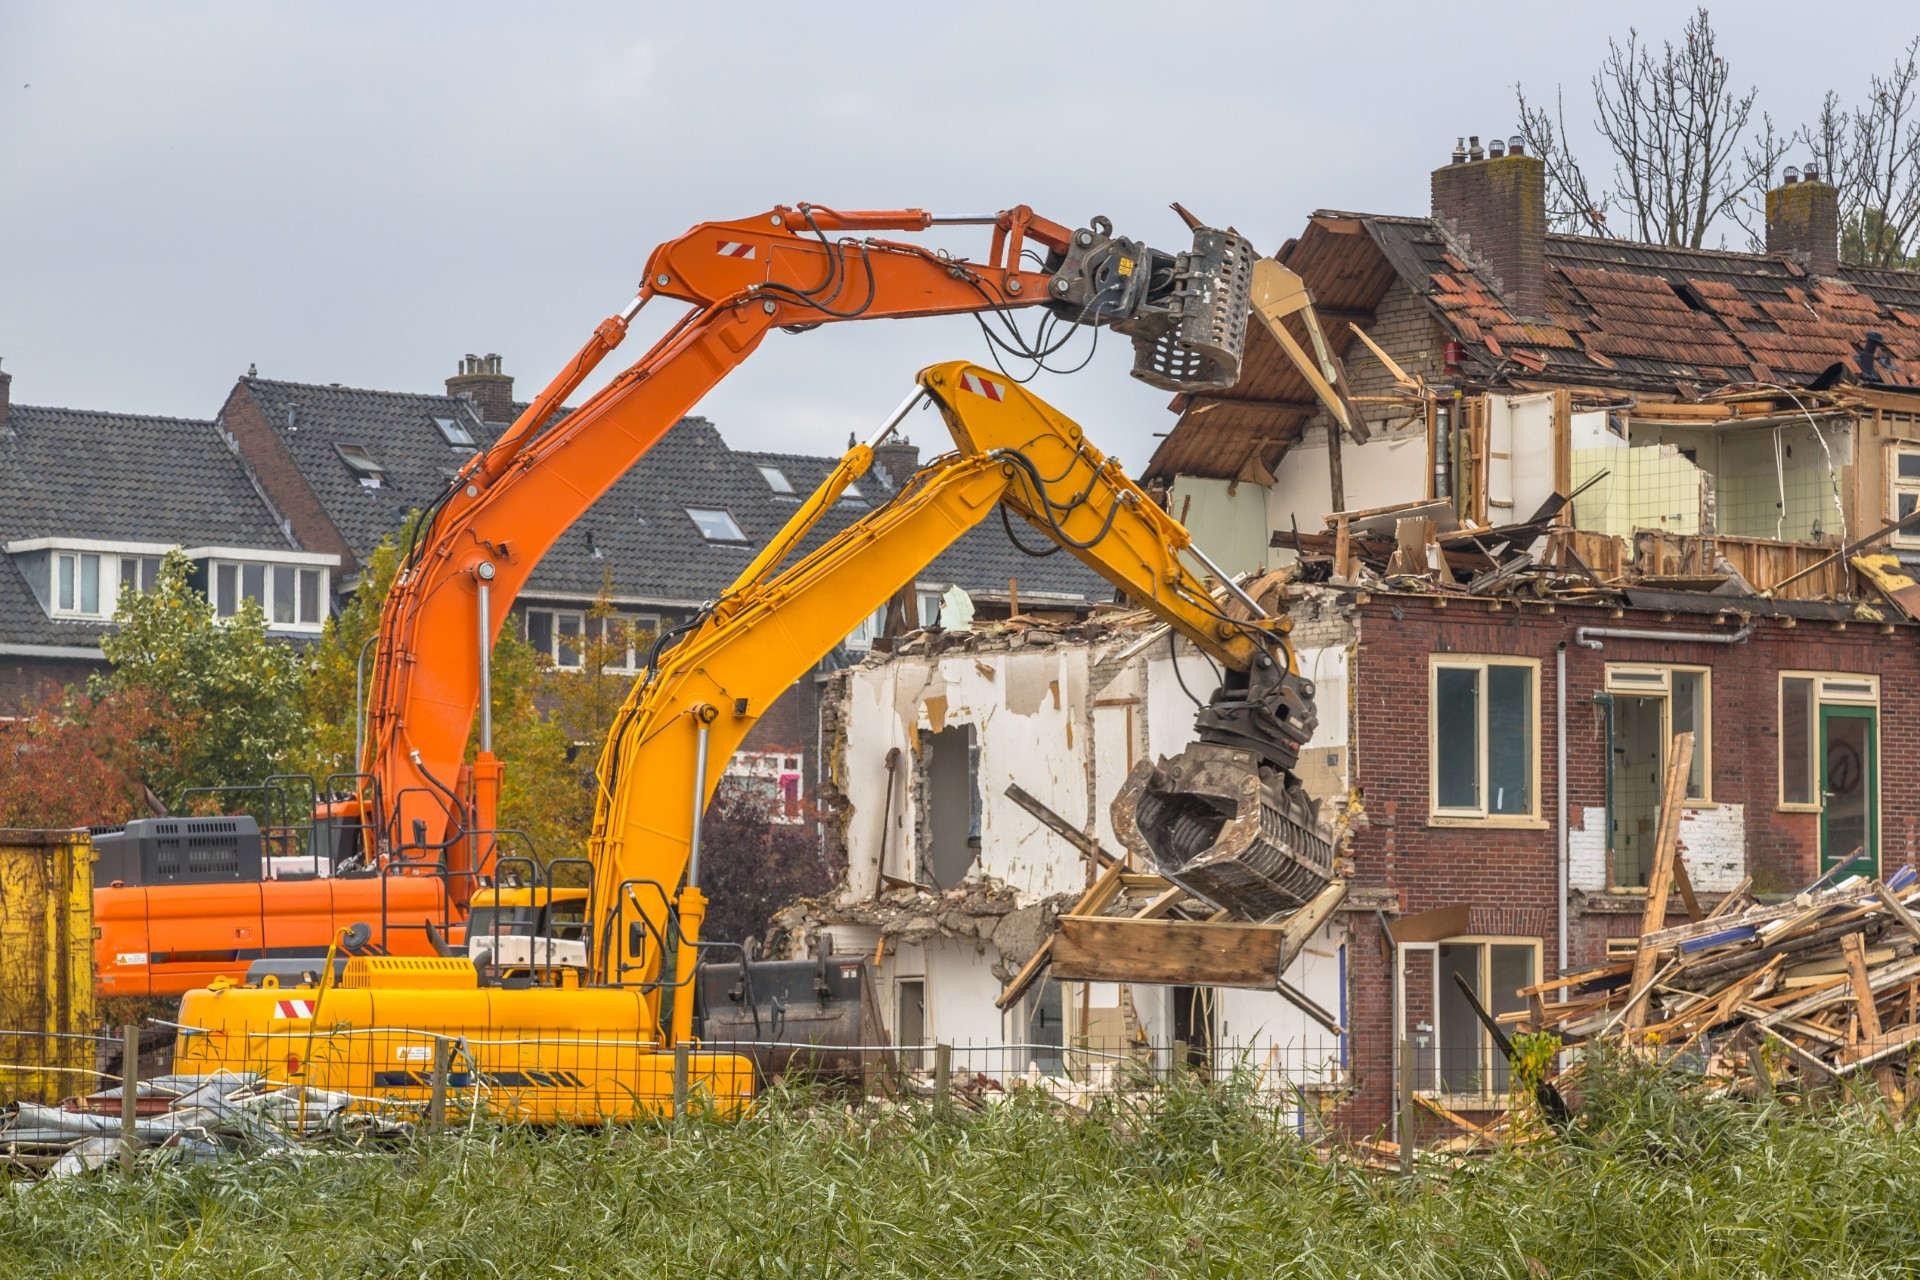 Two Demolition cranes demolishing old row of houses in the Netherlands